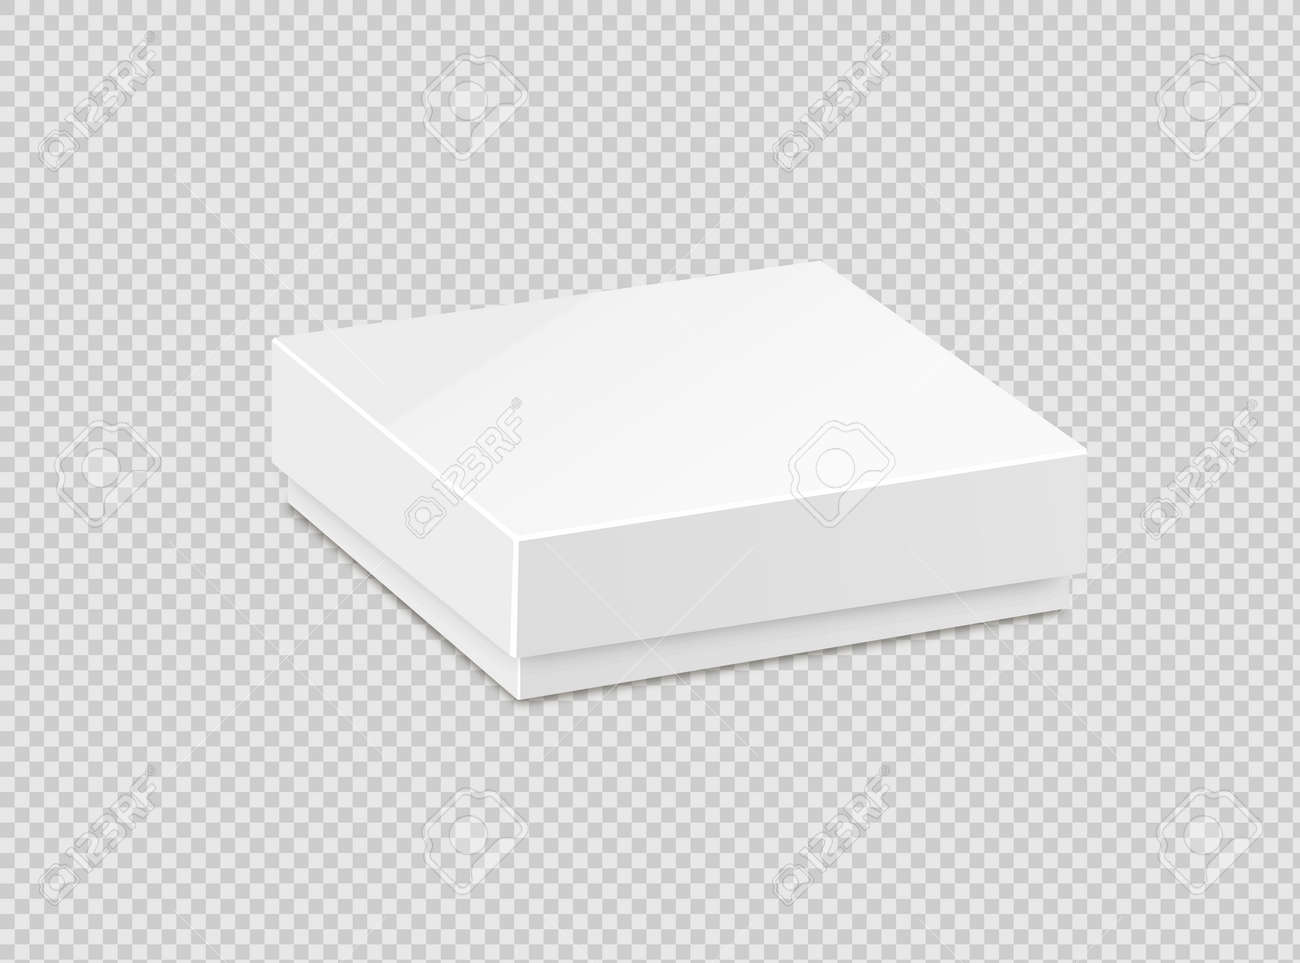 Product Cardboard Package Box. Illustration Isolated On White Background. Mock Up Template Ready For Your Design - 169116542